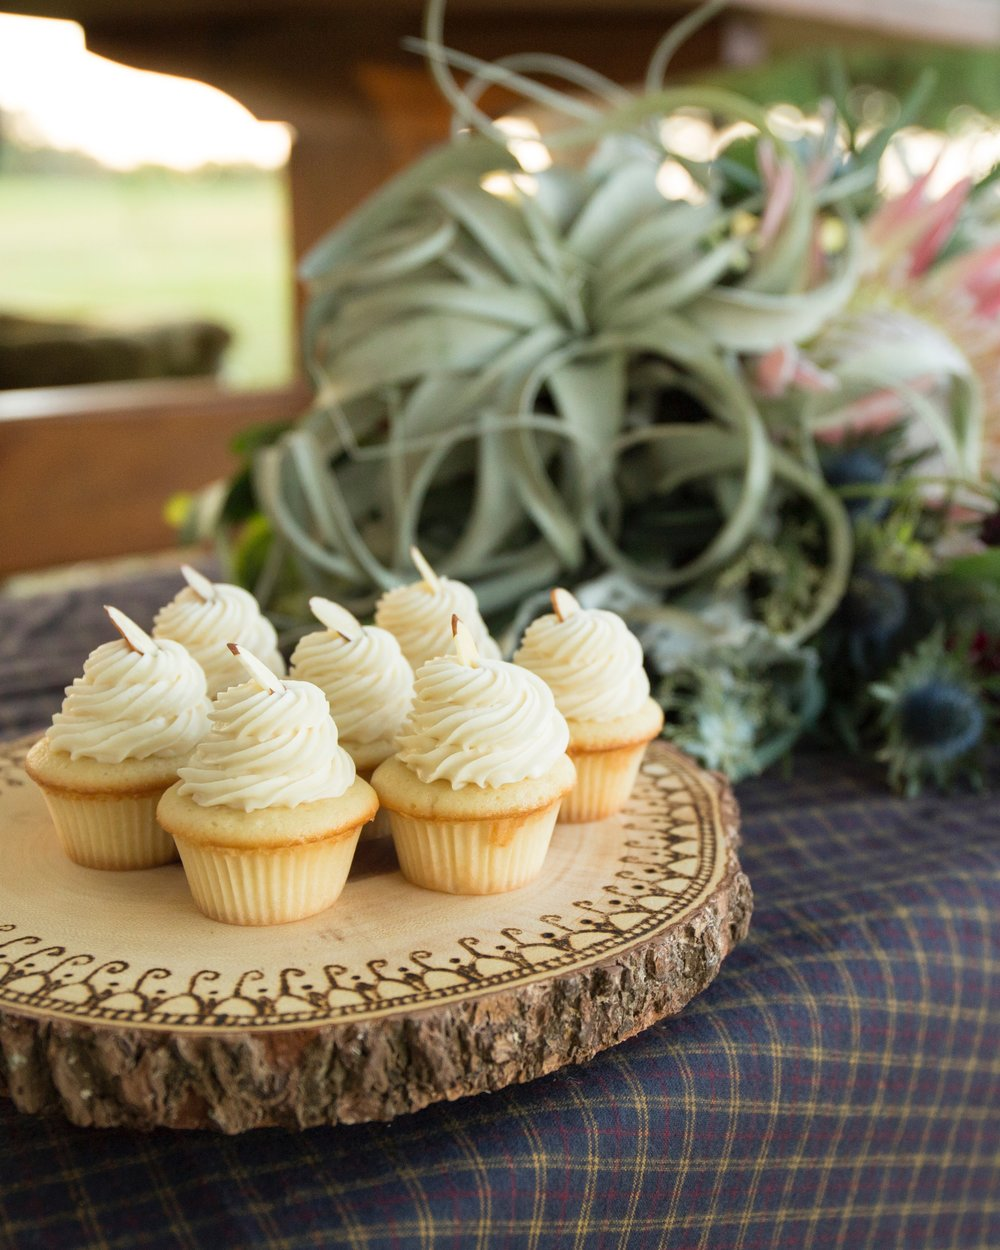 Cupcakes on wooden plate.jpg